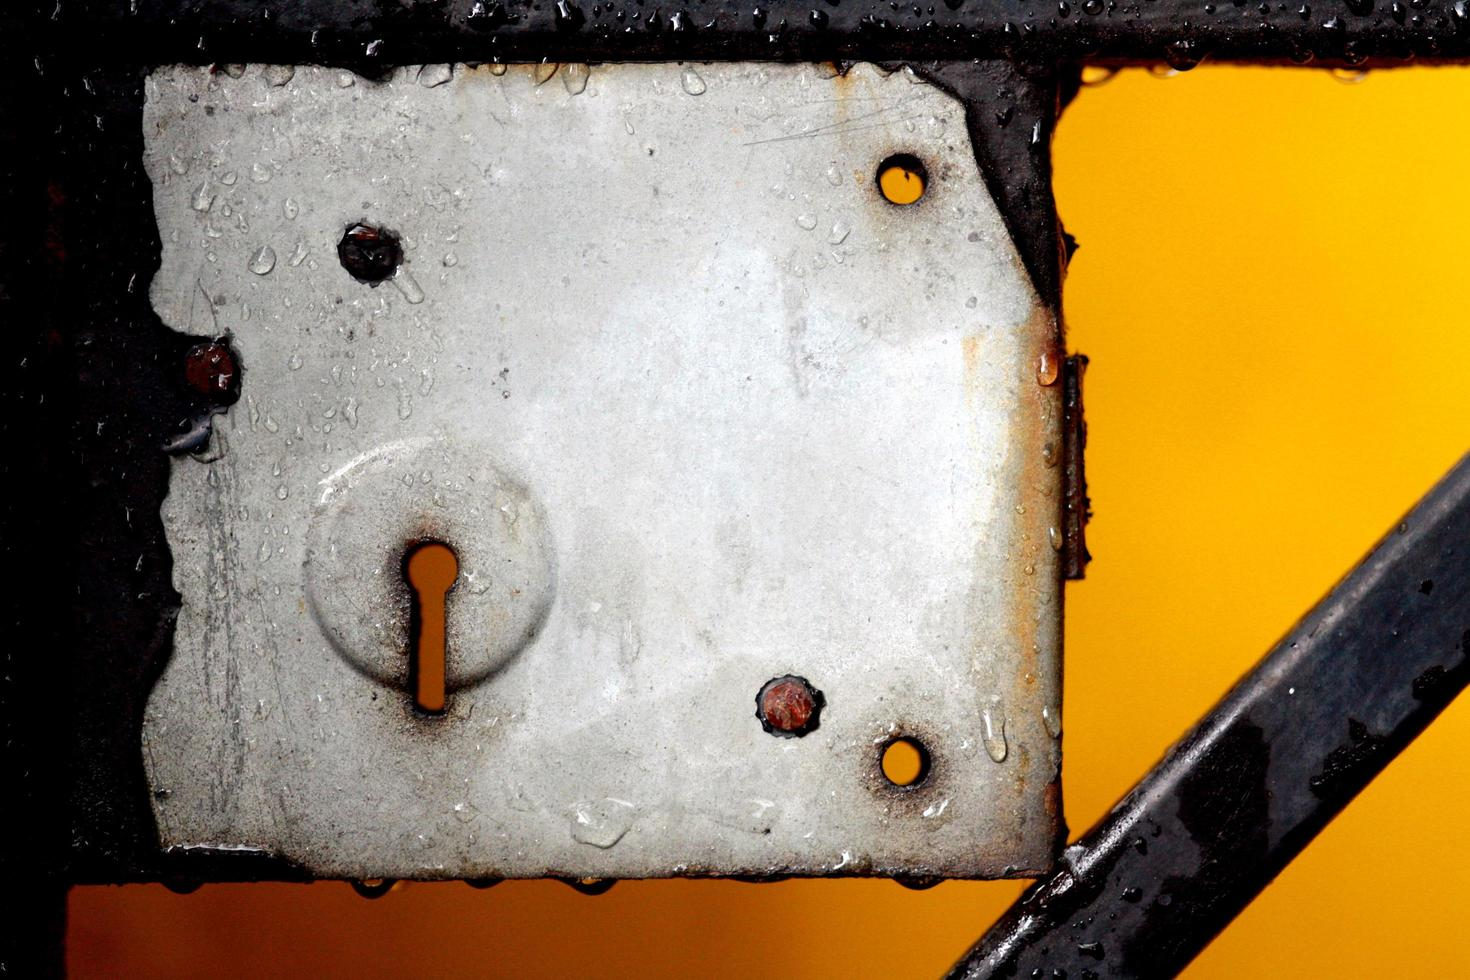 Close up view of a metal keyhole and lock photo